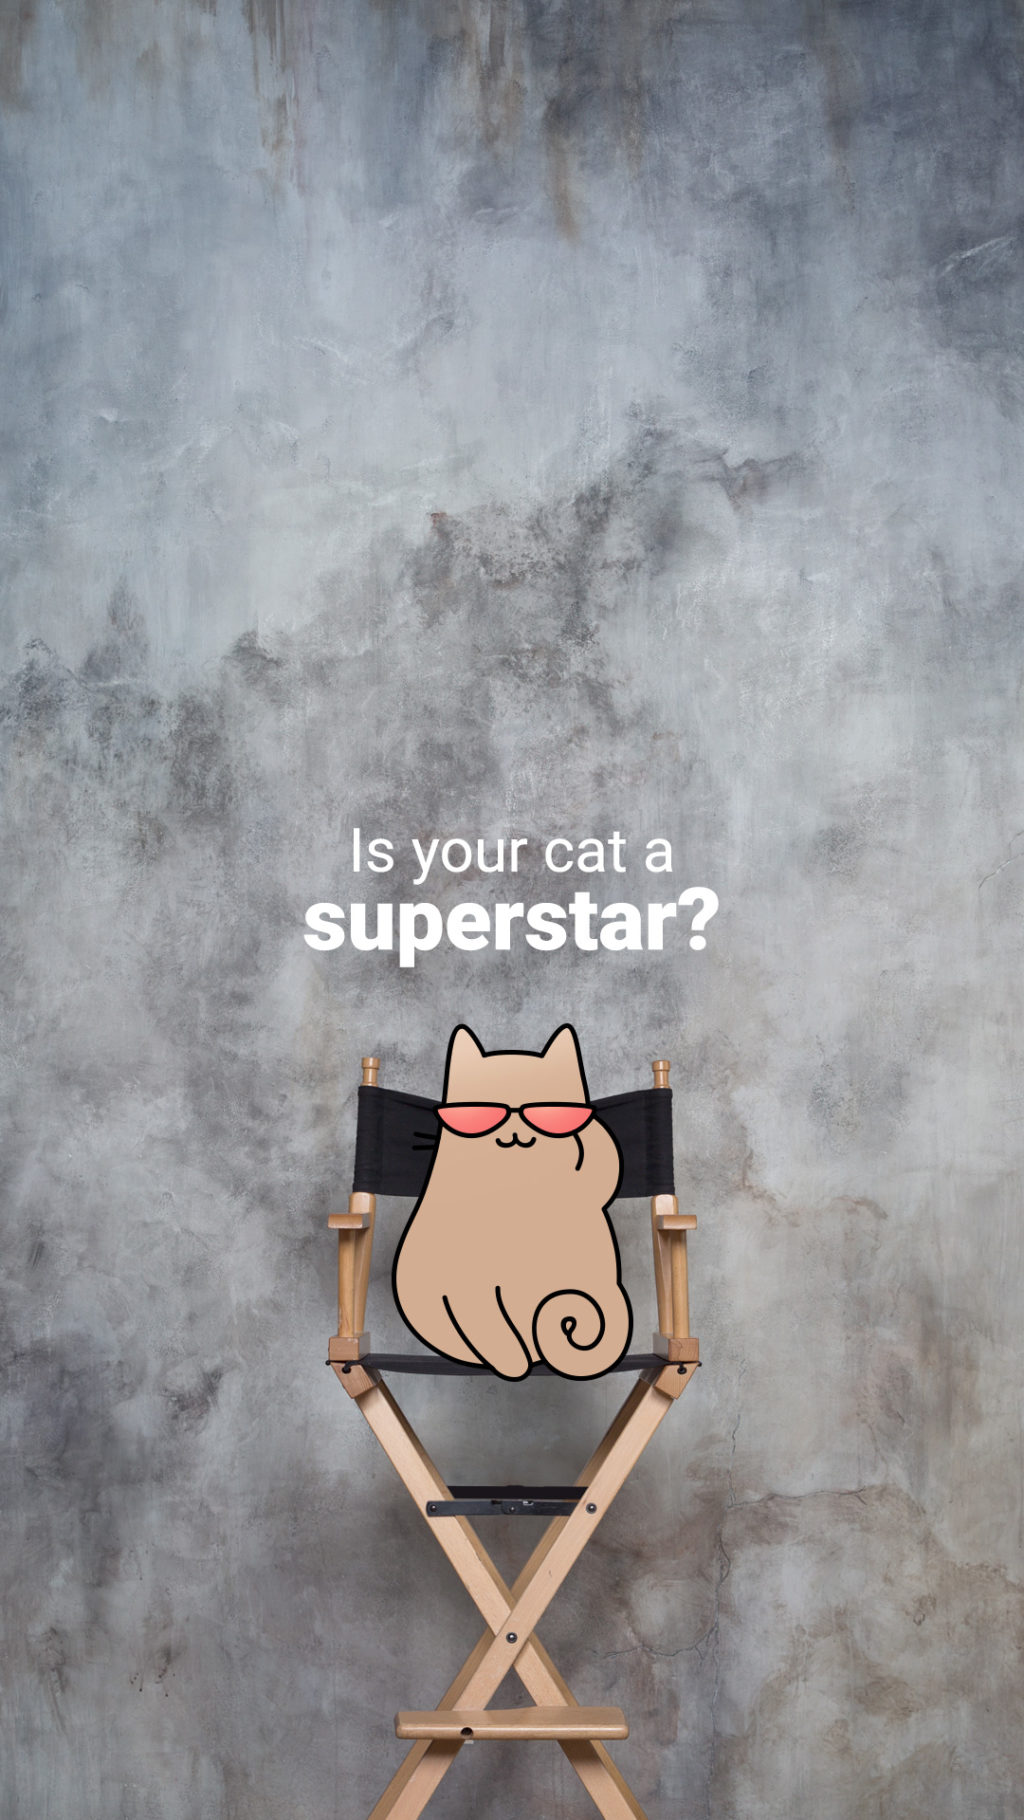 Is your cat a superstar? (Cartoon cat wearing sunglasses and sitting in a director's chair.)